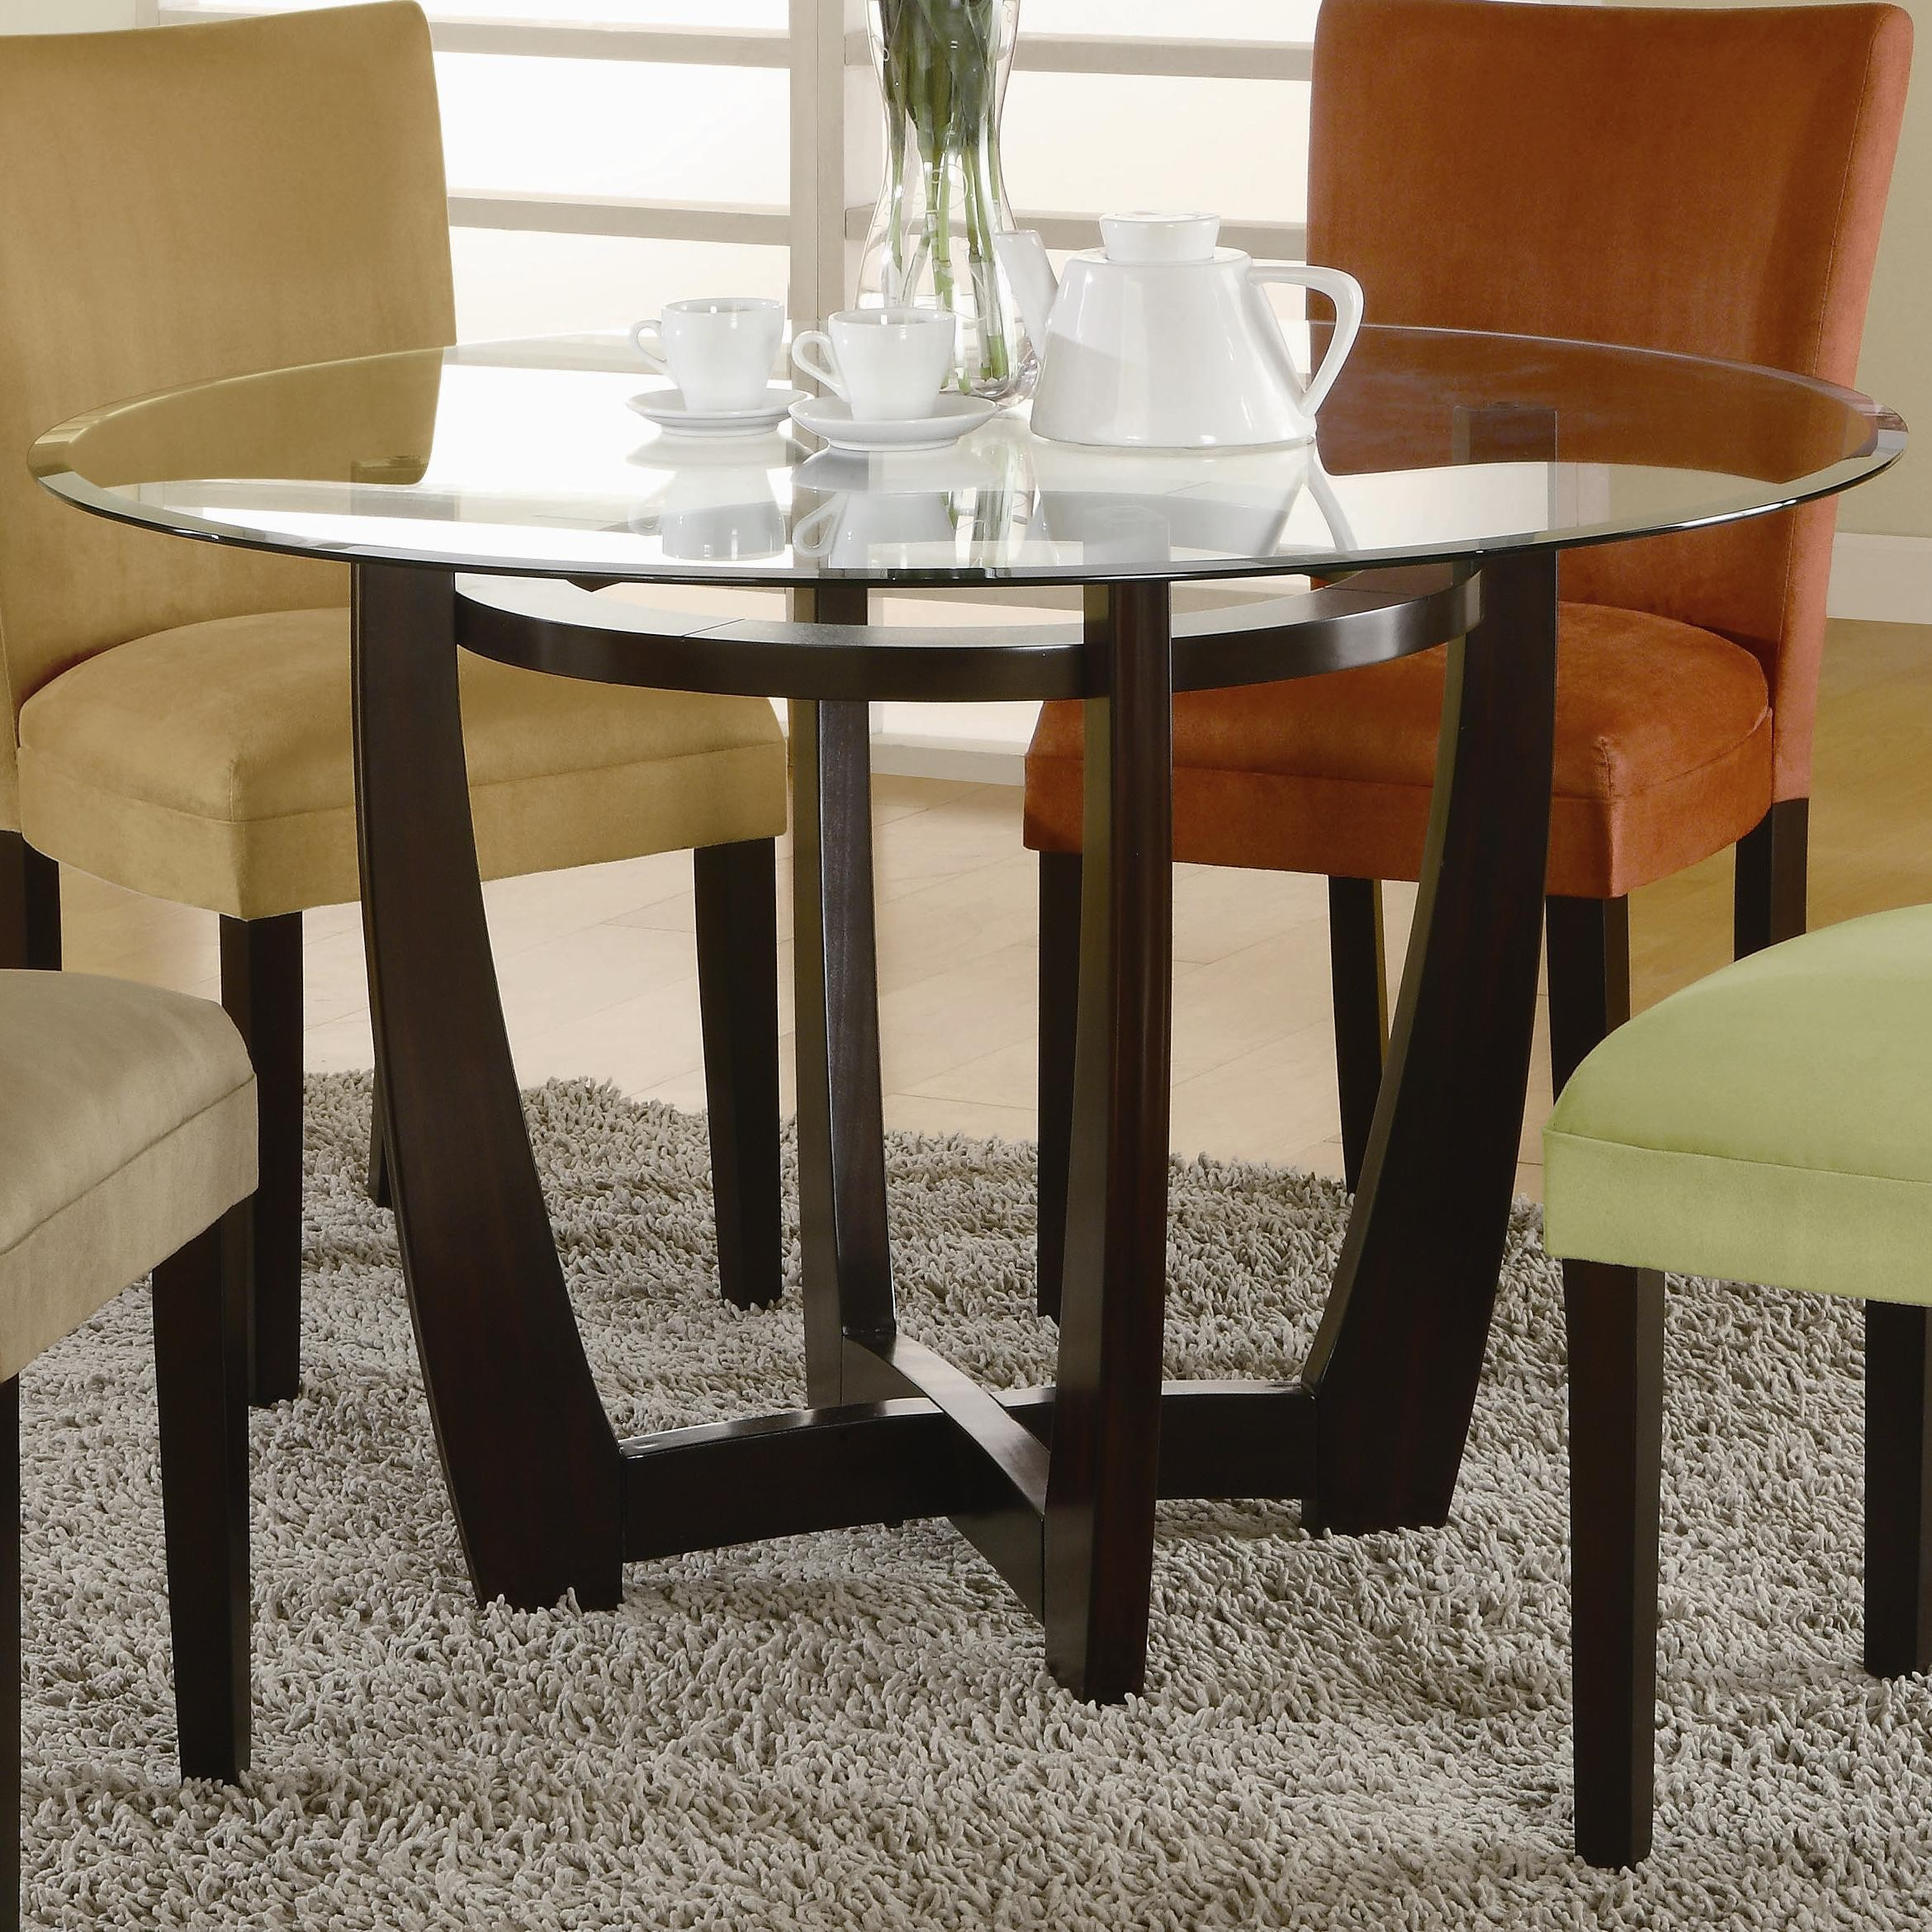 Dining room table bases for glass tops - Round Dining Table Wood Base And Glass On Top Surface With Colorful Chairs